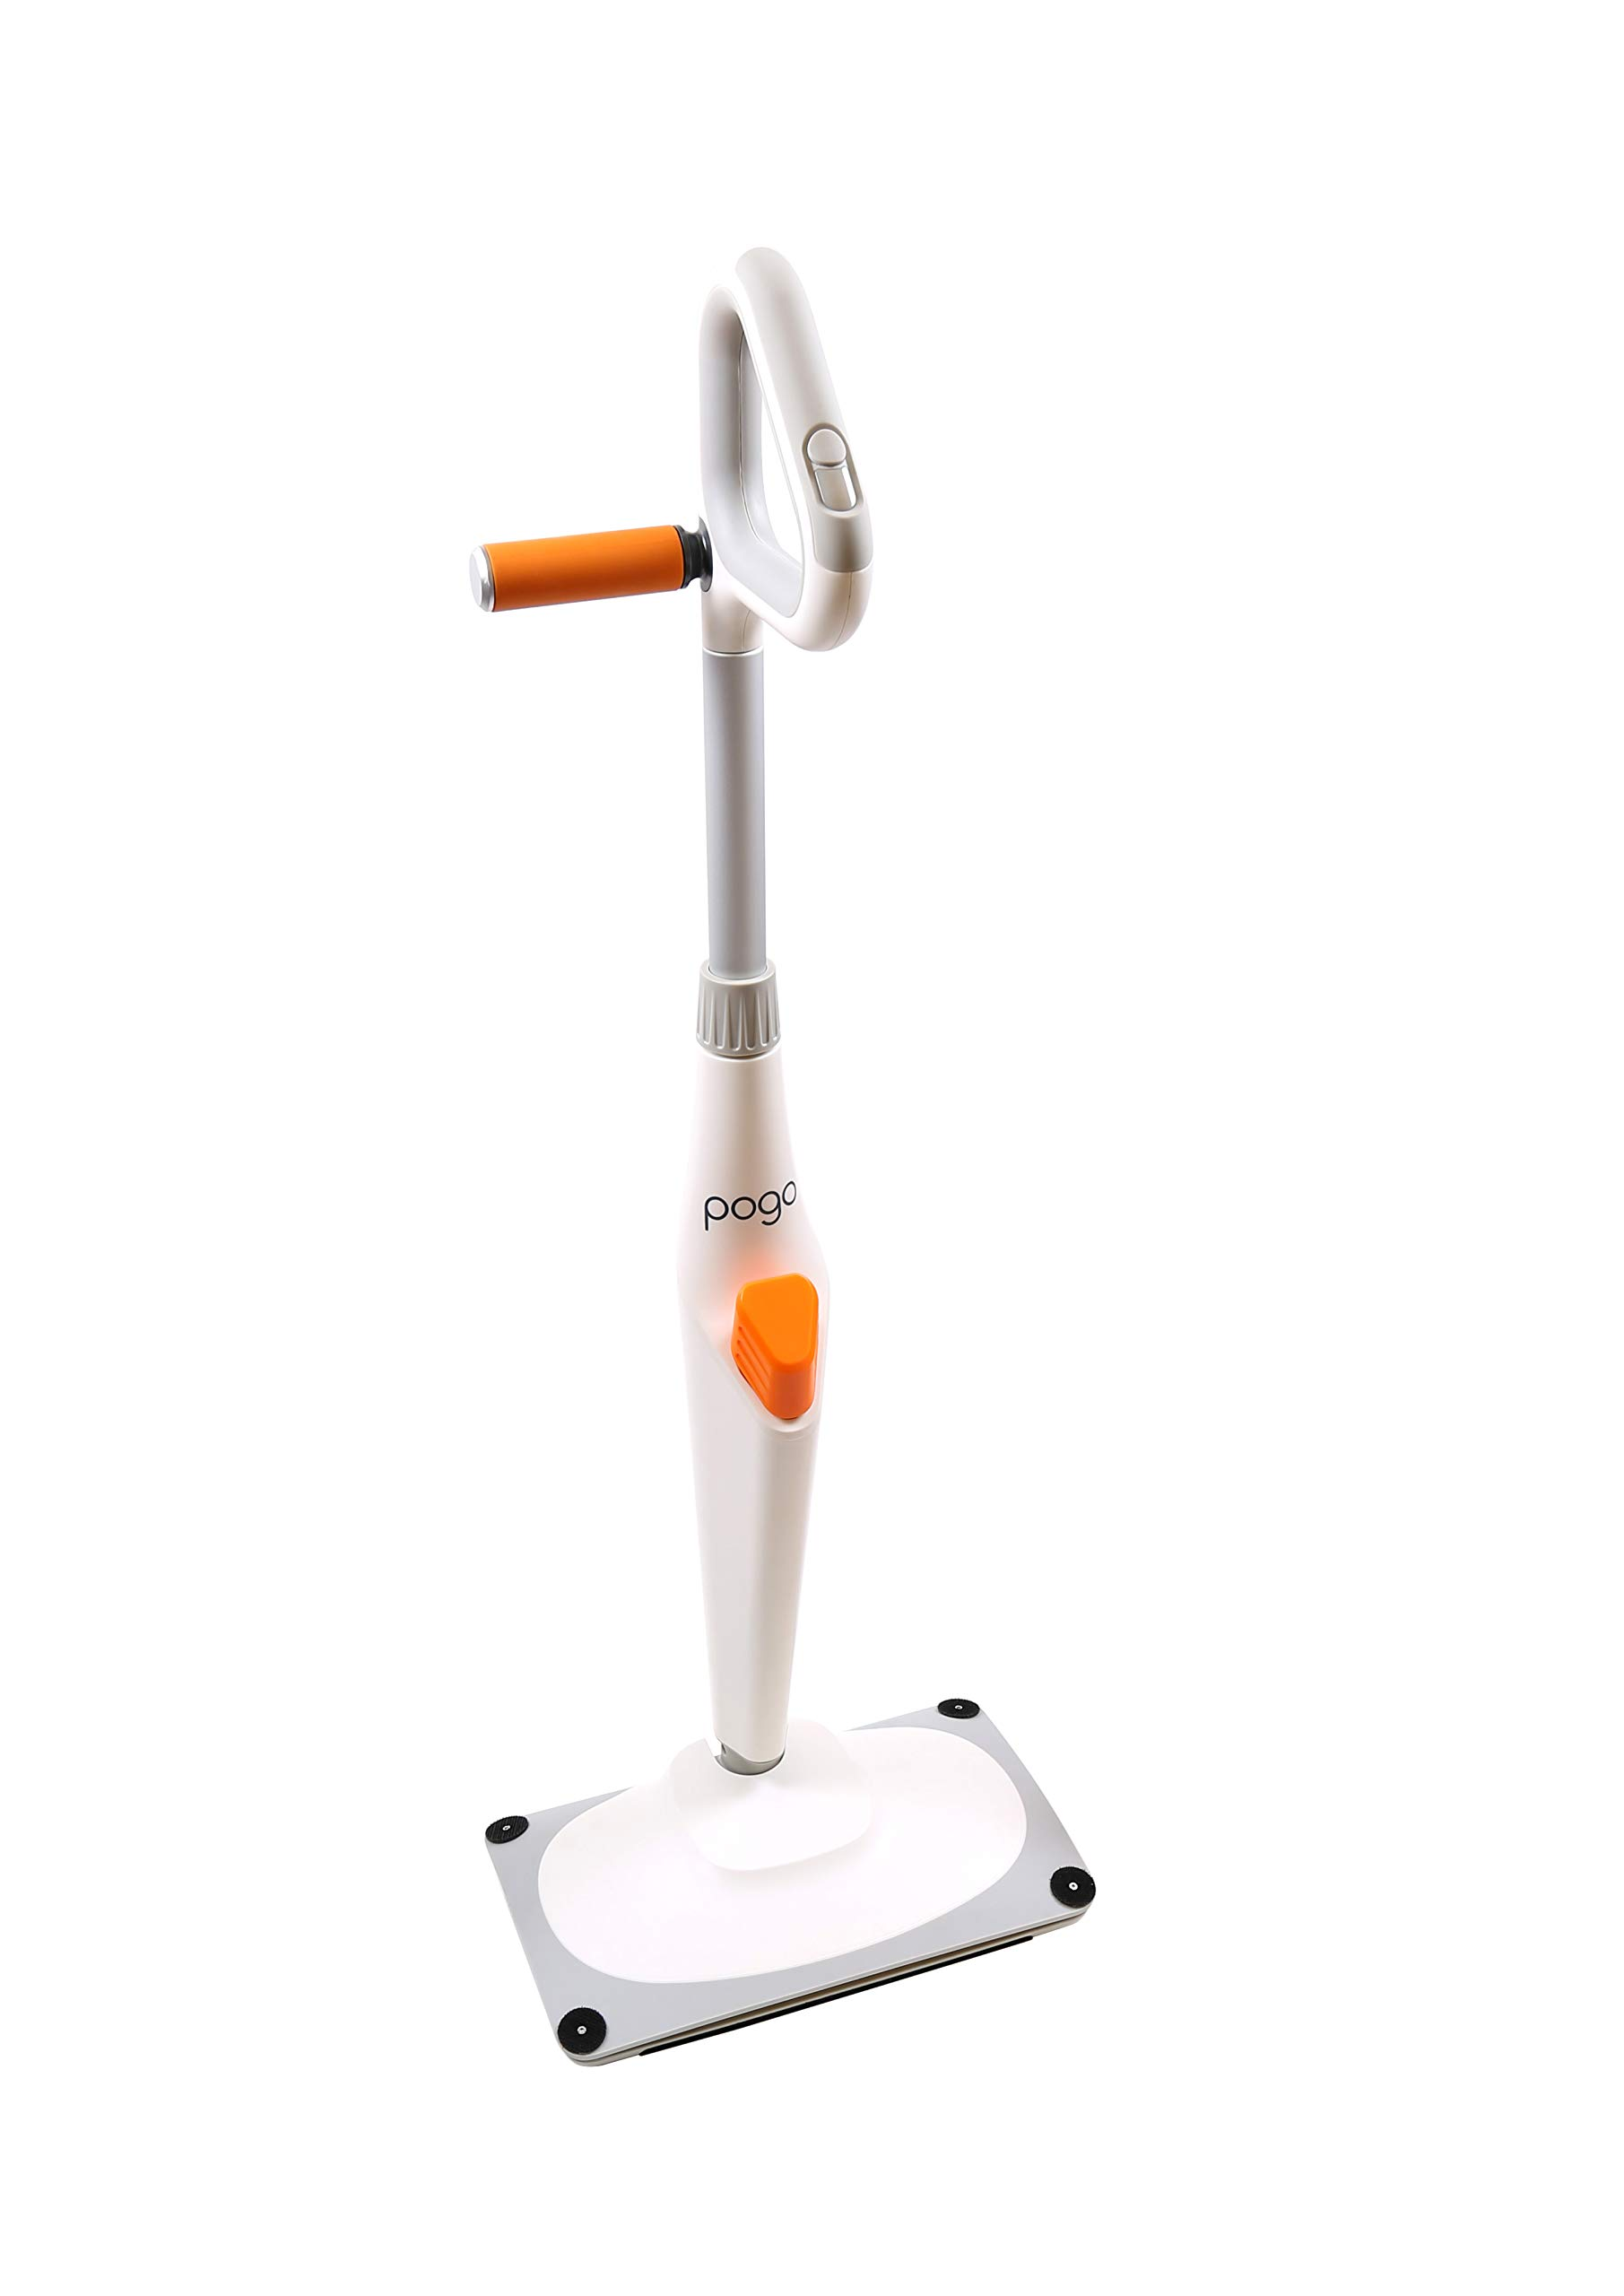 Pogo Electric Mop 4000 RPM Pro Package - Cleans Any Surface. Includes 6 Mop Heads, 2 XL Batteries.